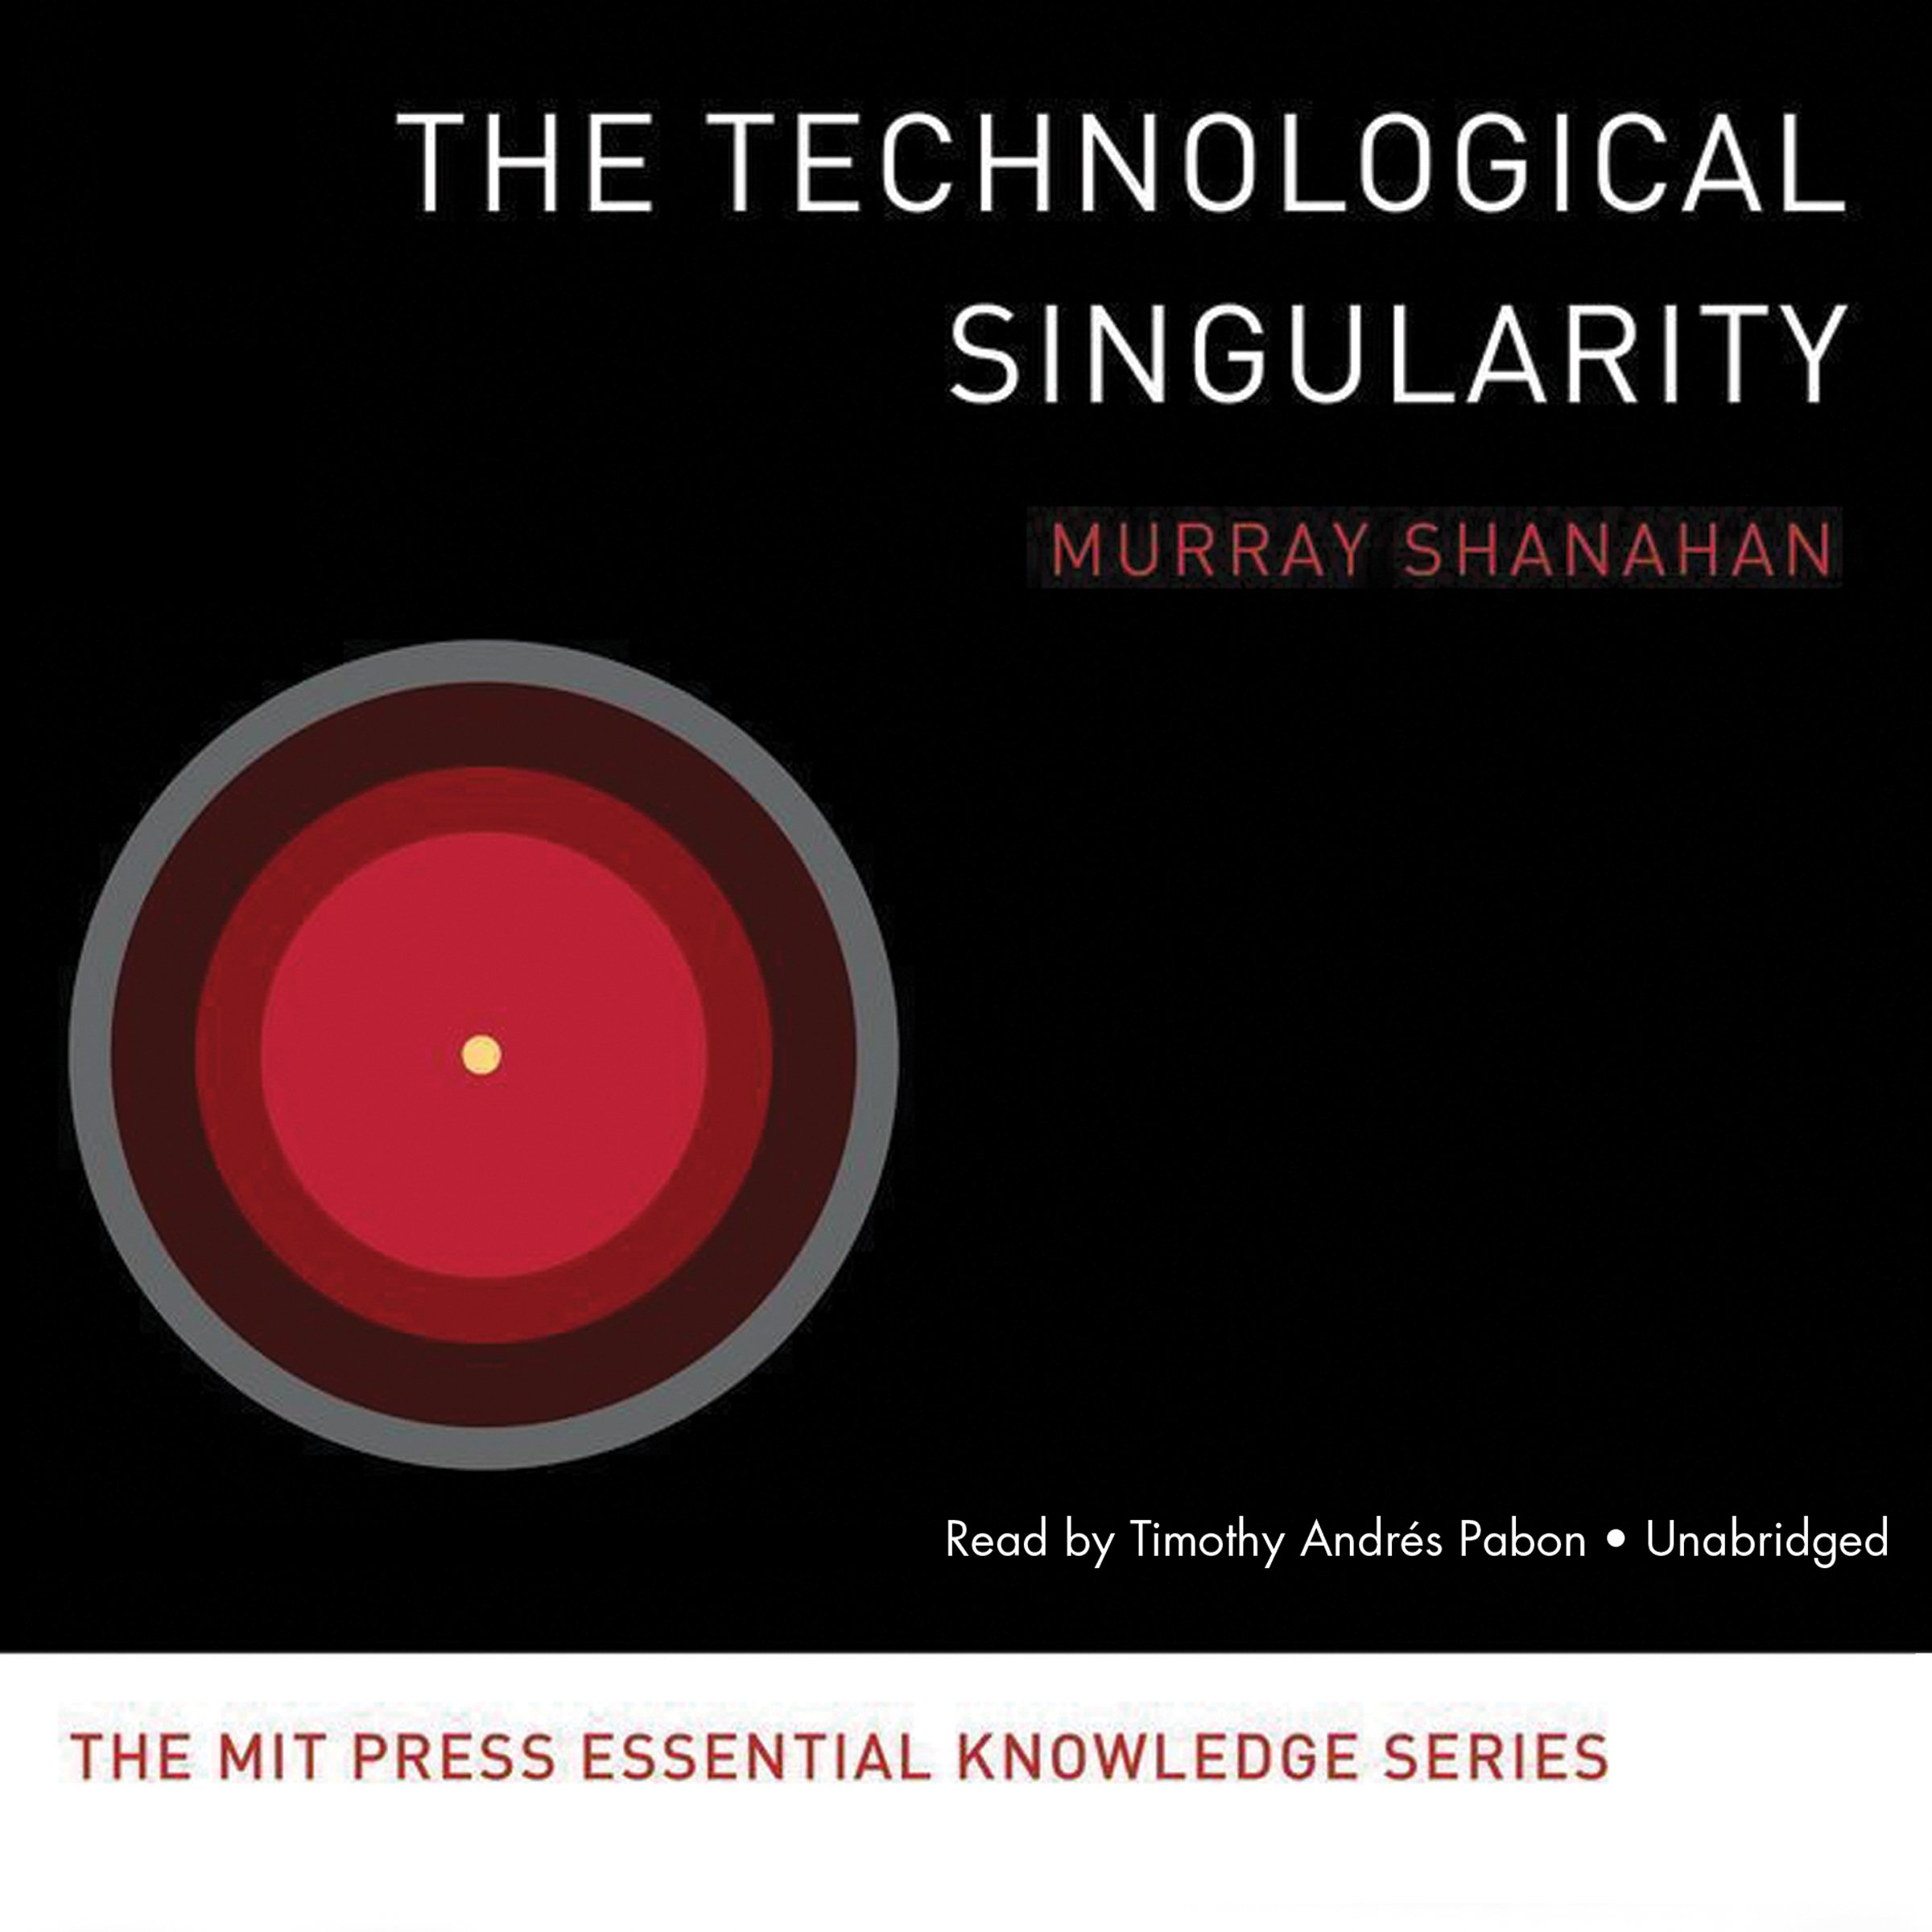 The Technological Singularity (Mit Press Knowledge)